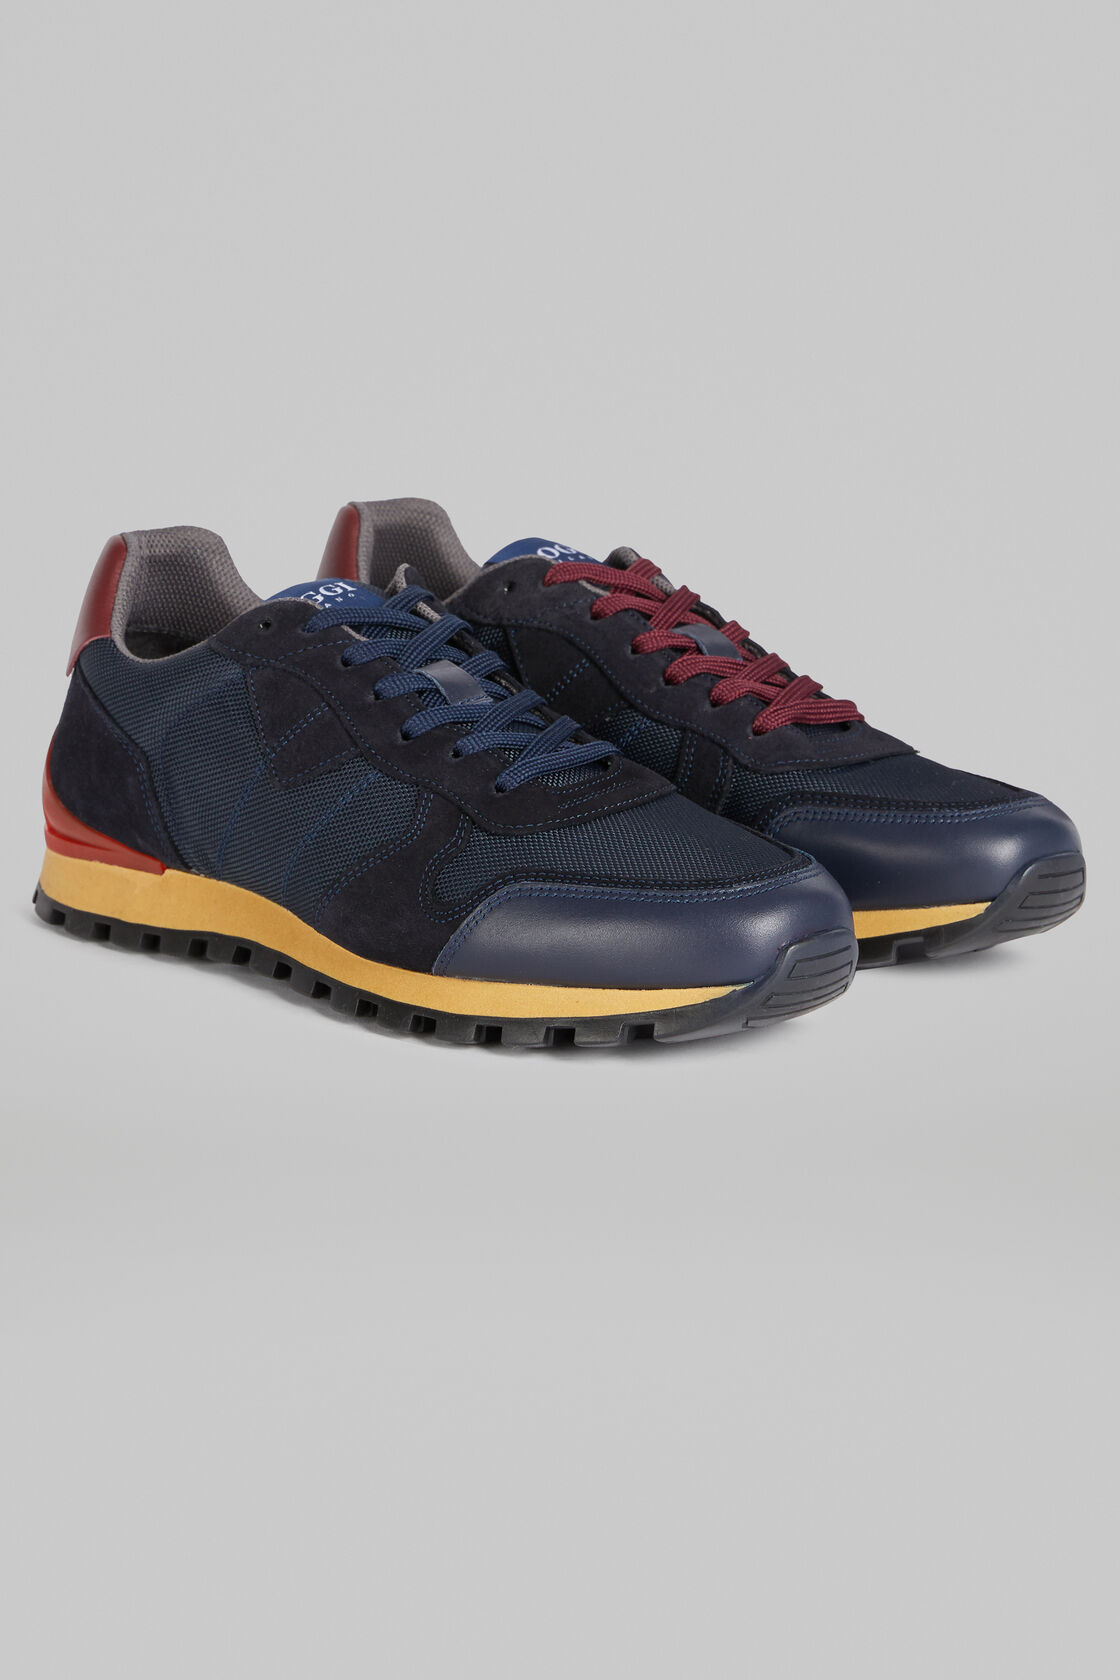 Sneakers Running Pelle E Nylon, Navy - Bordeaux, hi-res